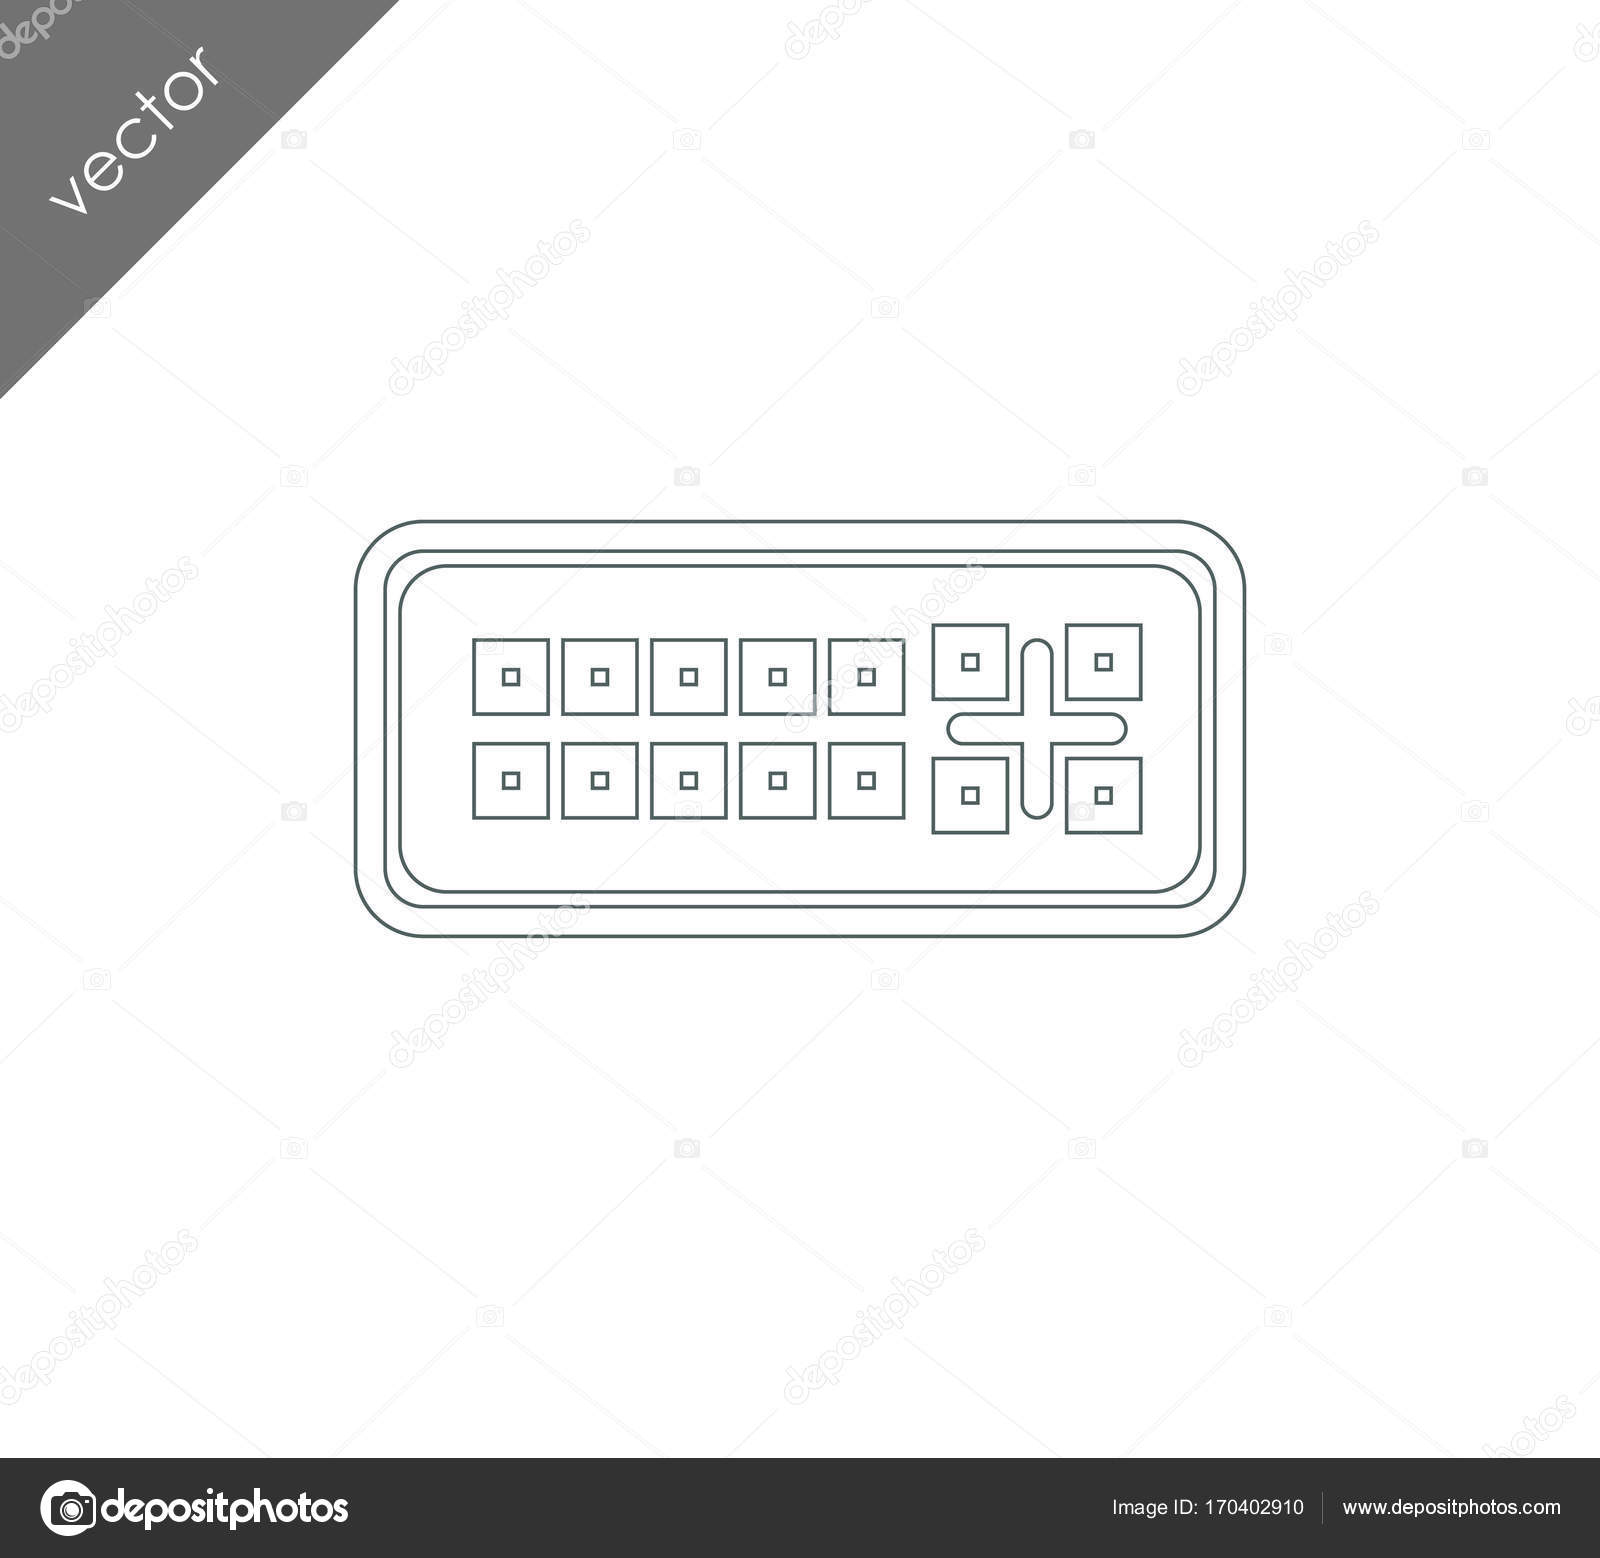 hight resolution of dvi port icon stock vector